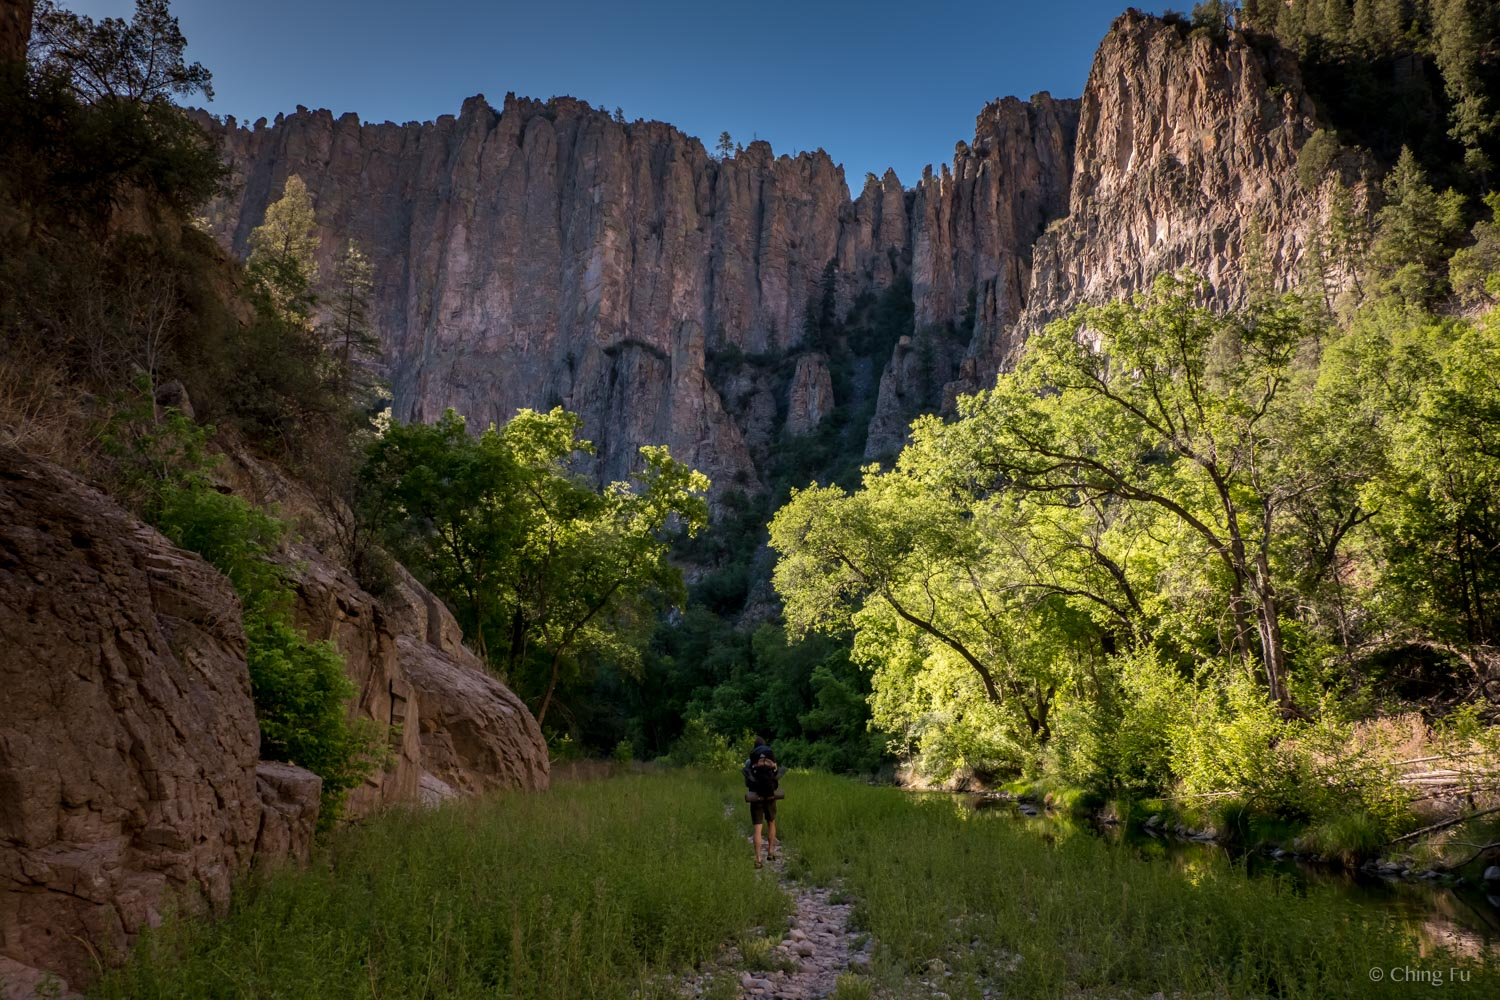 Backpacking out of Gila River Canyon the next morning.